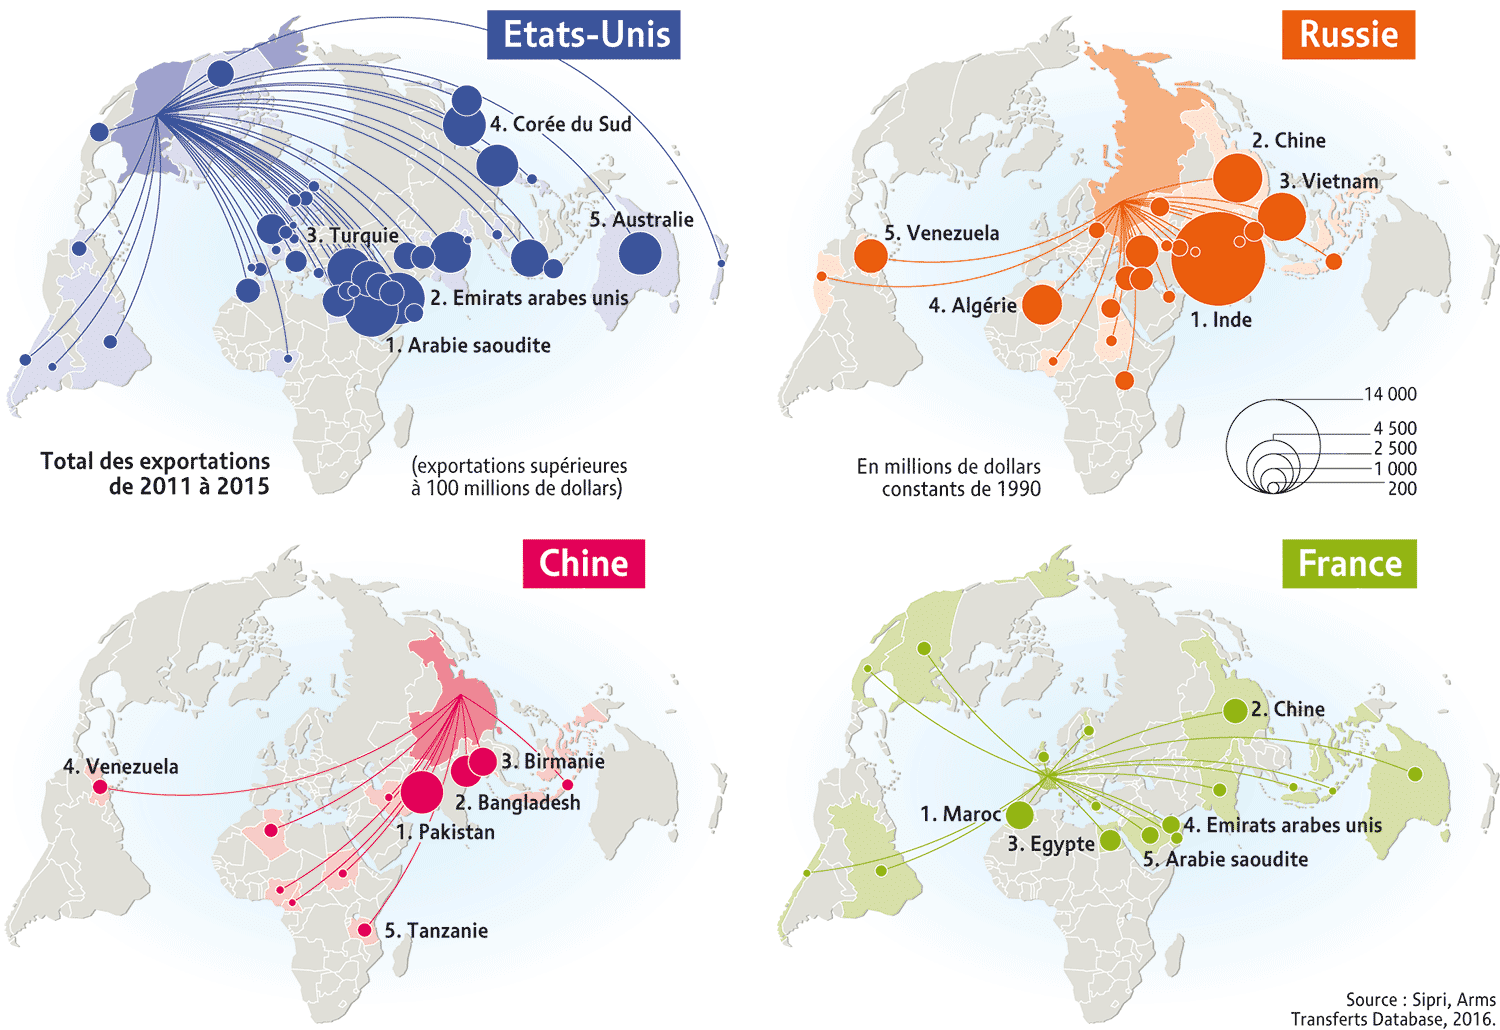 Mapping of military exportations (2011-2015)